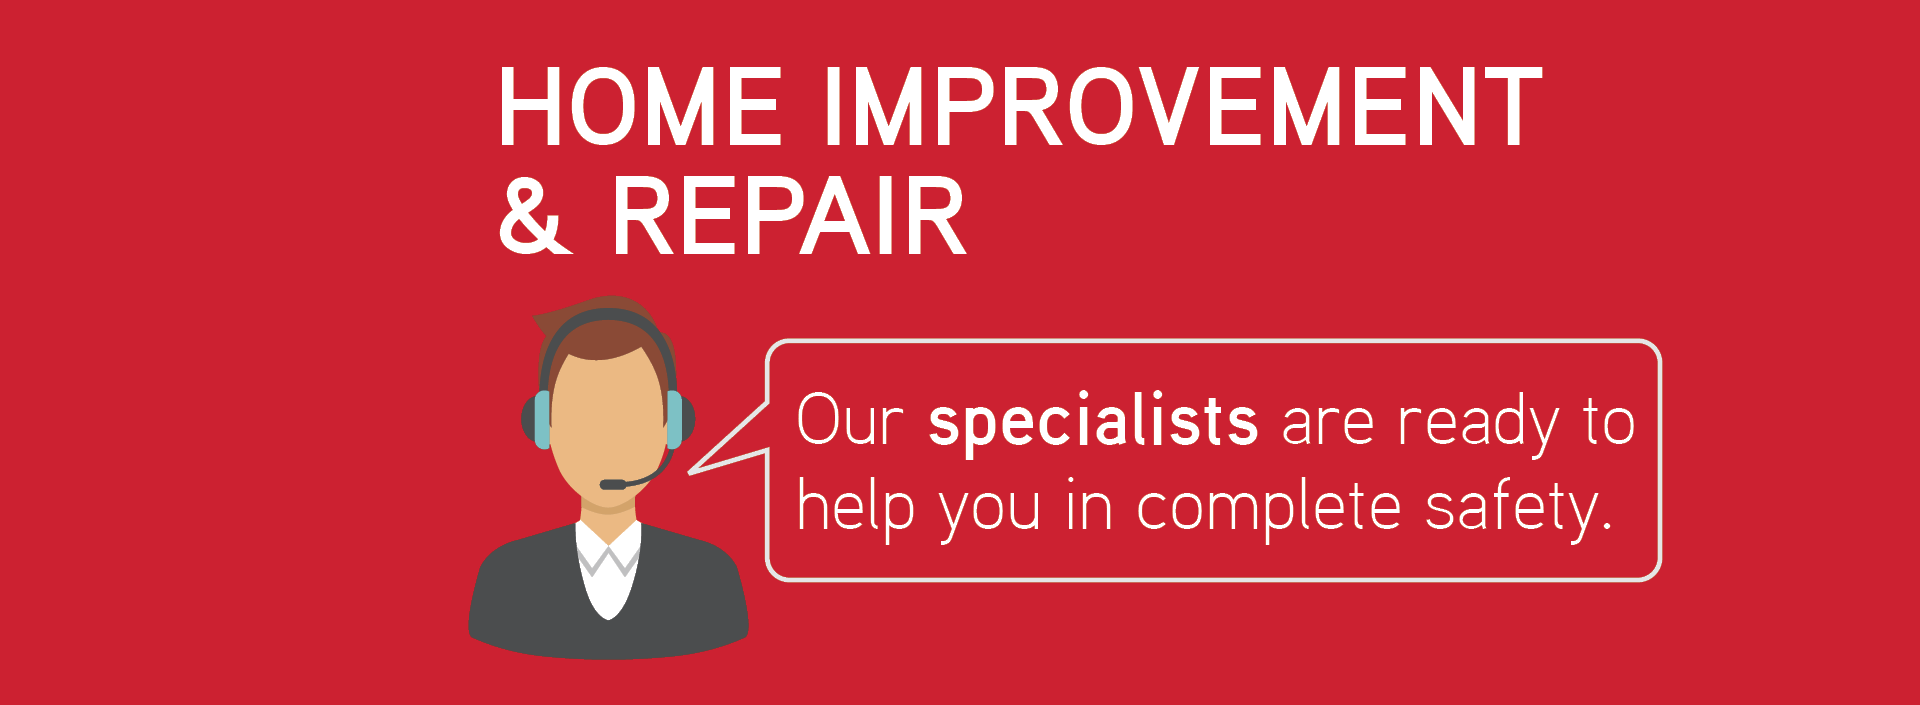 Home improvement & repair: Our specialists are ready to help you in complete safety.